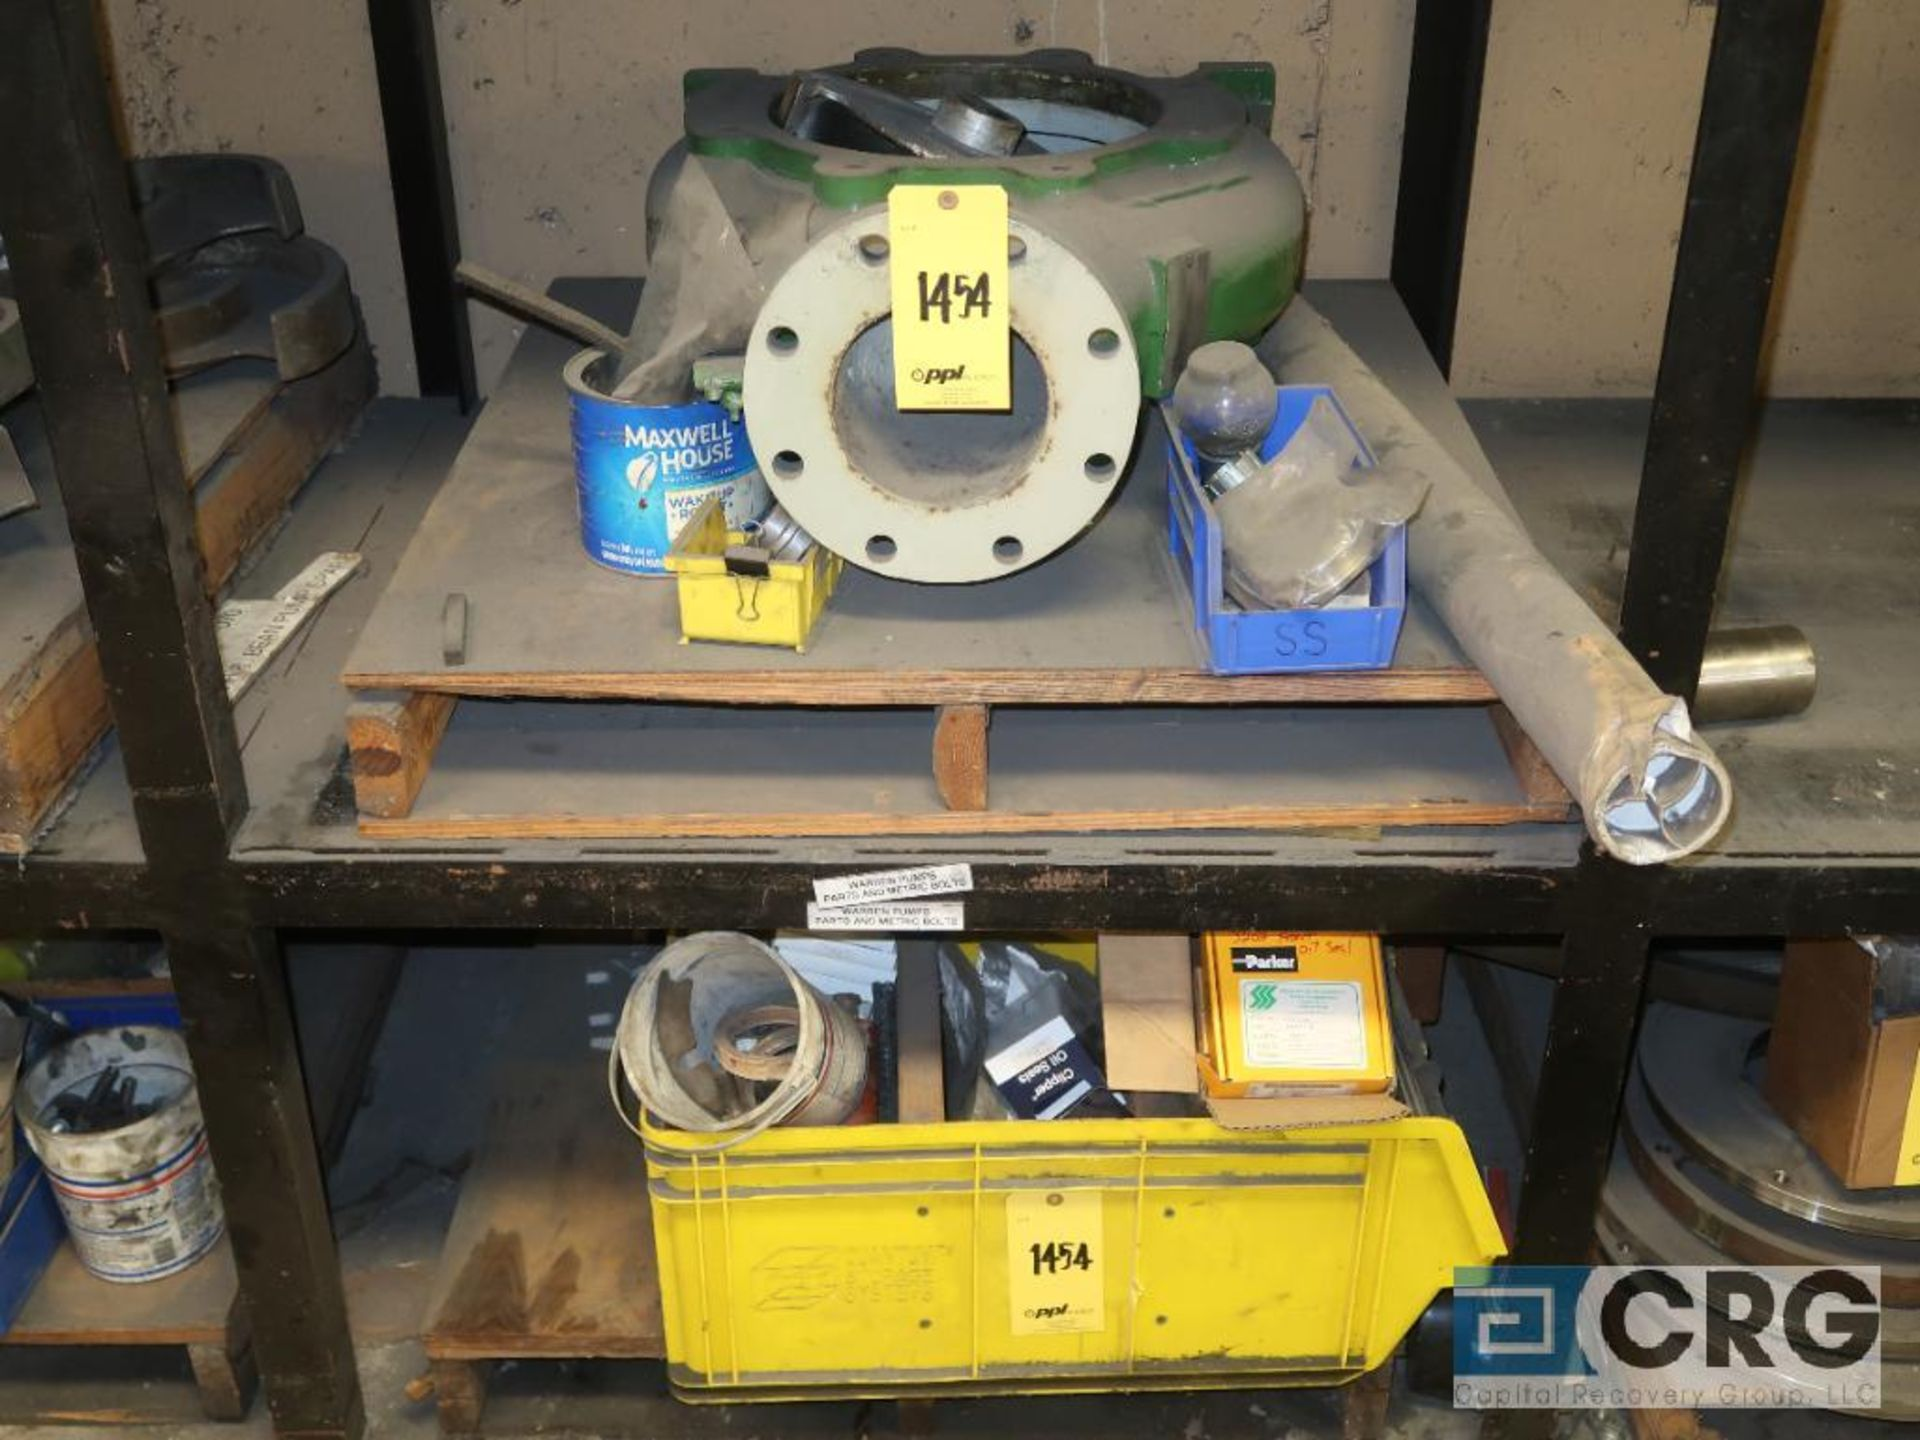 Lot of (5) sections of assorted Warren parts including cassing, impeller, and face plate (Basement - Image 2 of 3